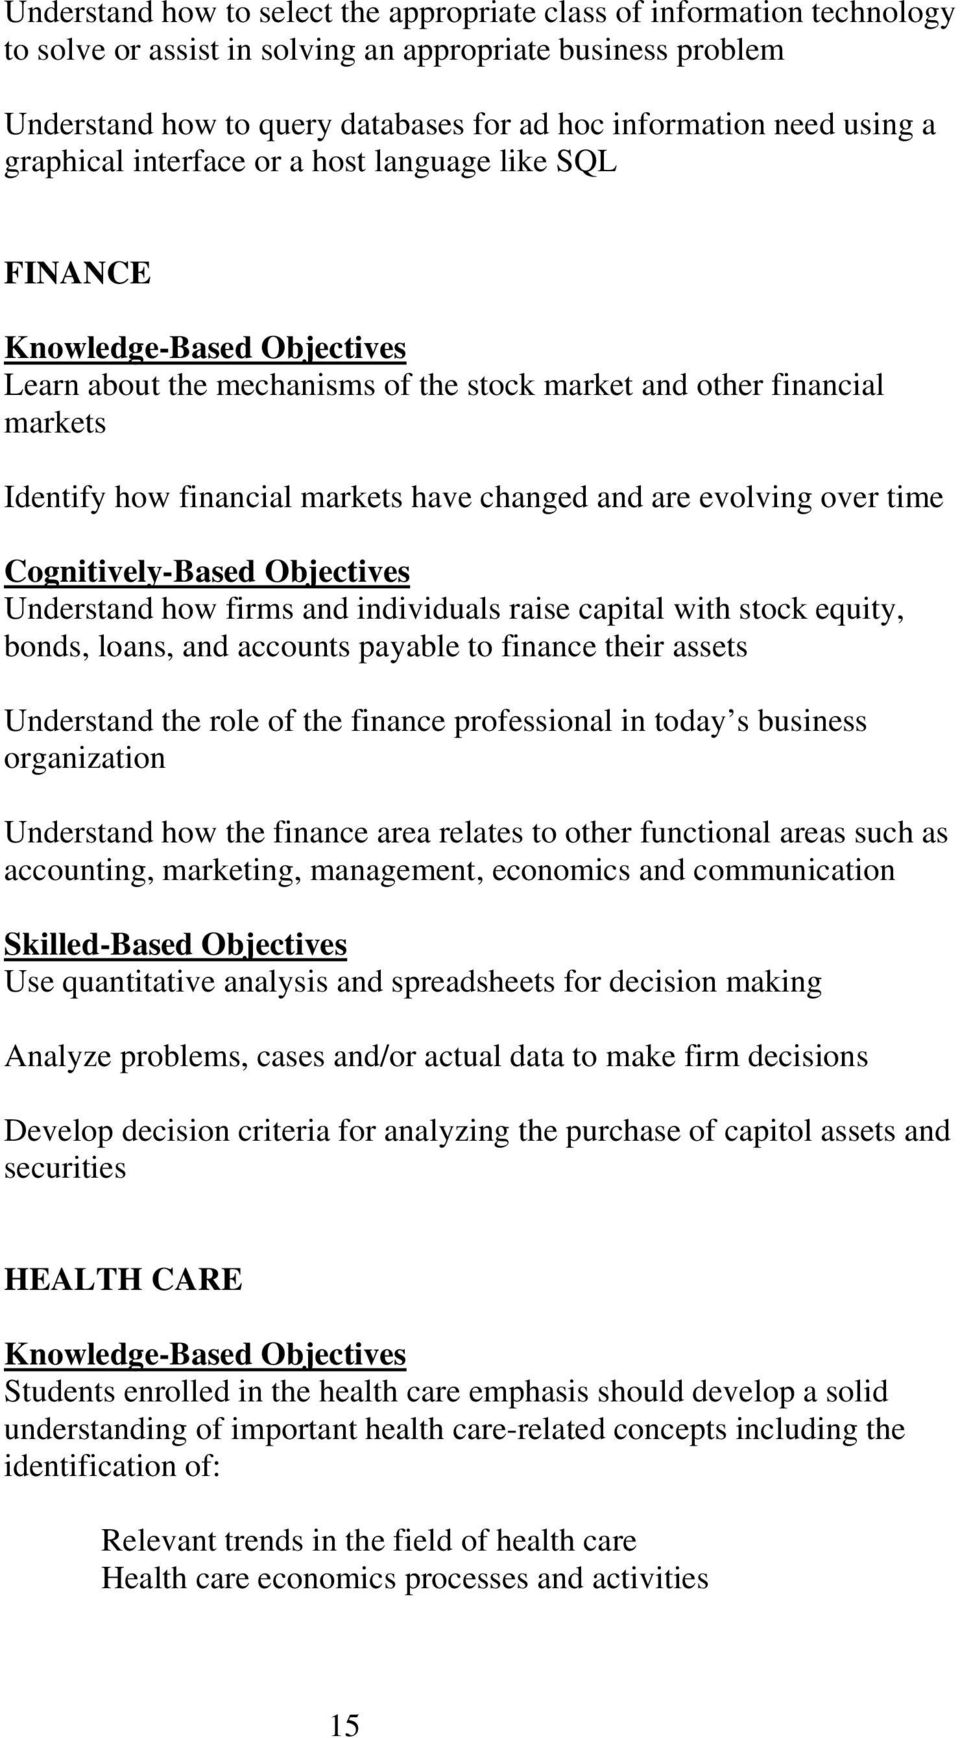 have changed and are evolving over time Cognitively-Based Objectives Understand how firms and individuals raise capital with stock equity, bonds, loans, and accounts payable to finance their assets